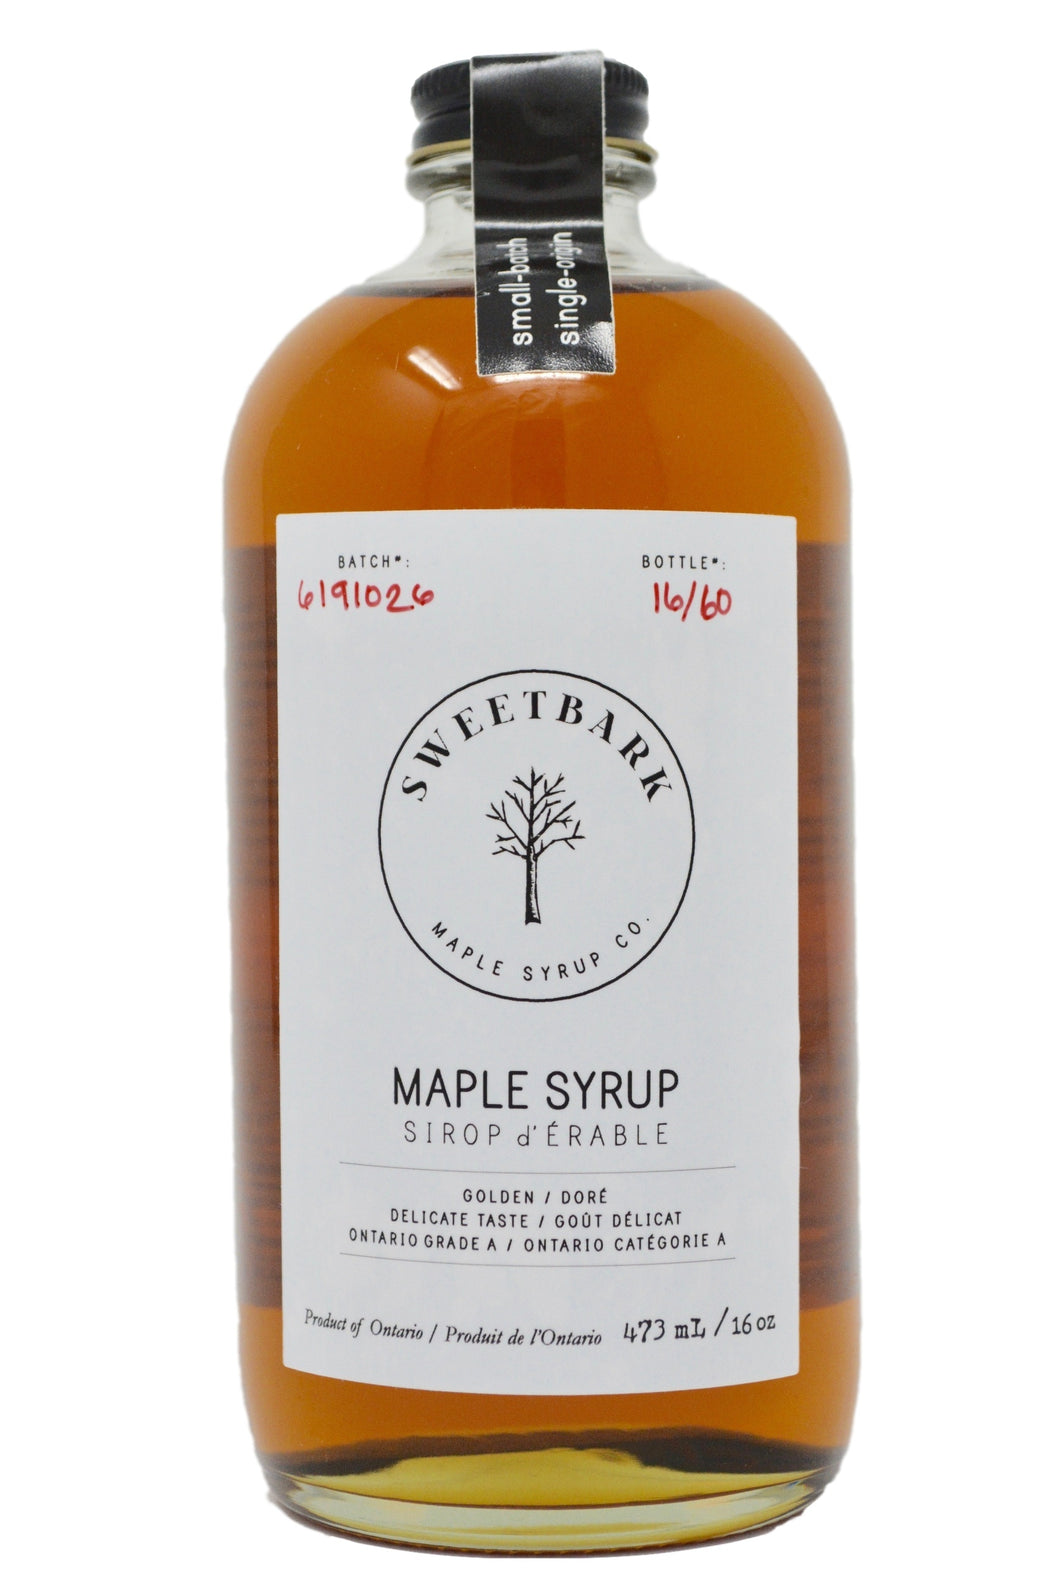 Sweetbark Maple Syrup - Golden 16oz - Sweetbark Maple Syrup Co.